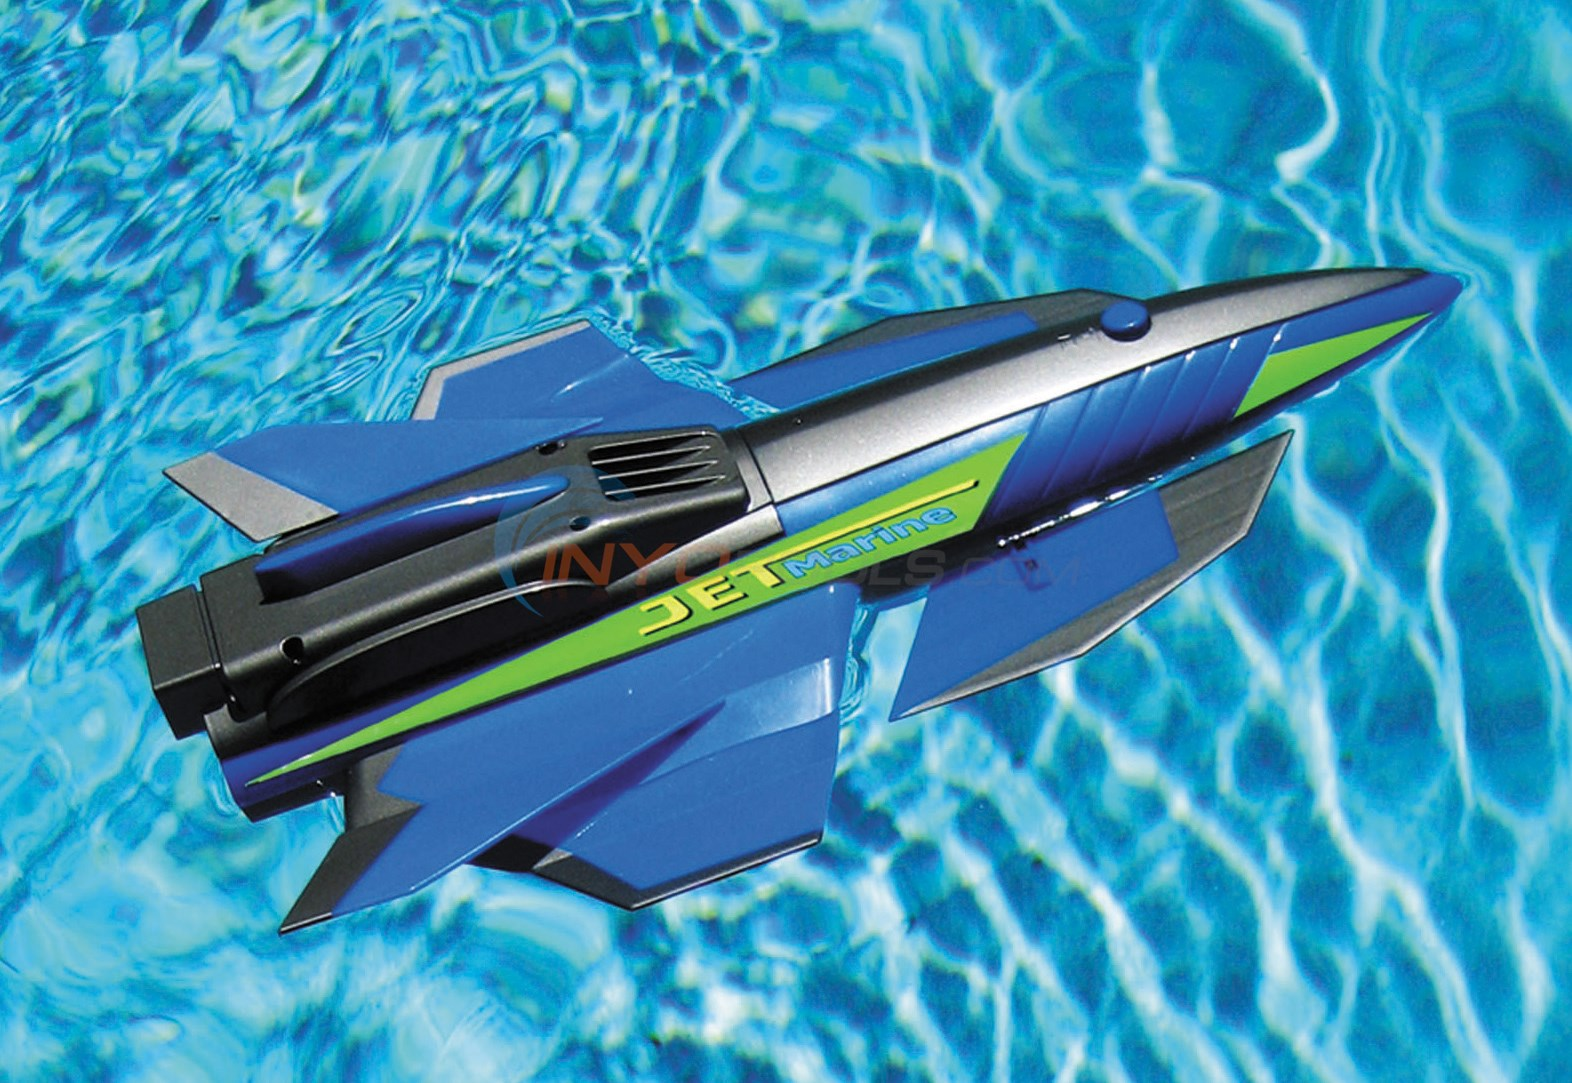 International Leisure Jet Marine Rc Boat - NT217